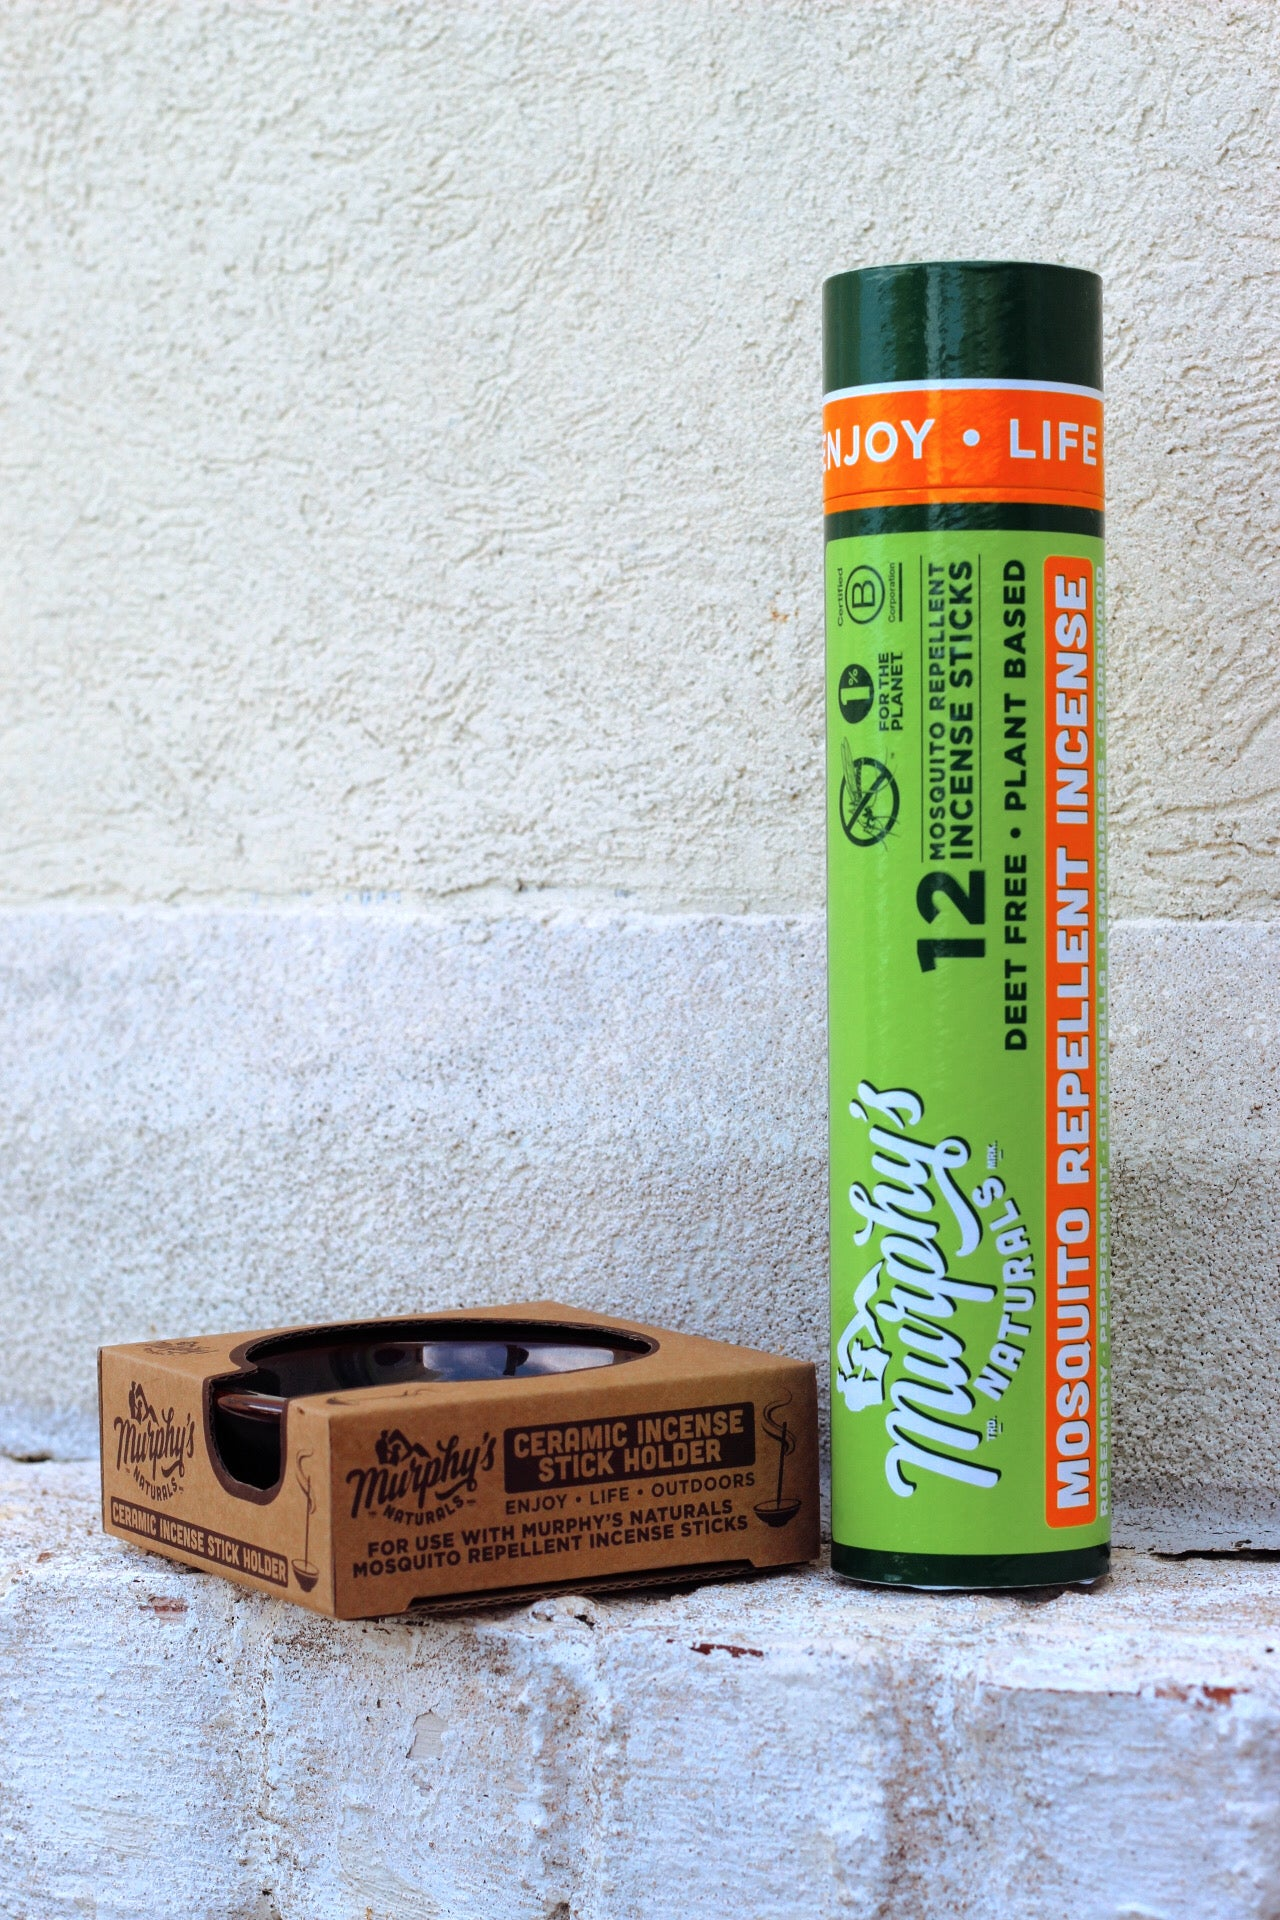 Murphy's Naturals | Ceramic Incense Stick Holder (Incense Sticks Sold Separately)